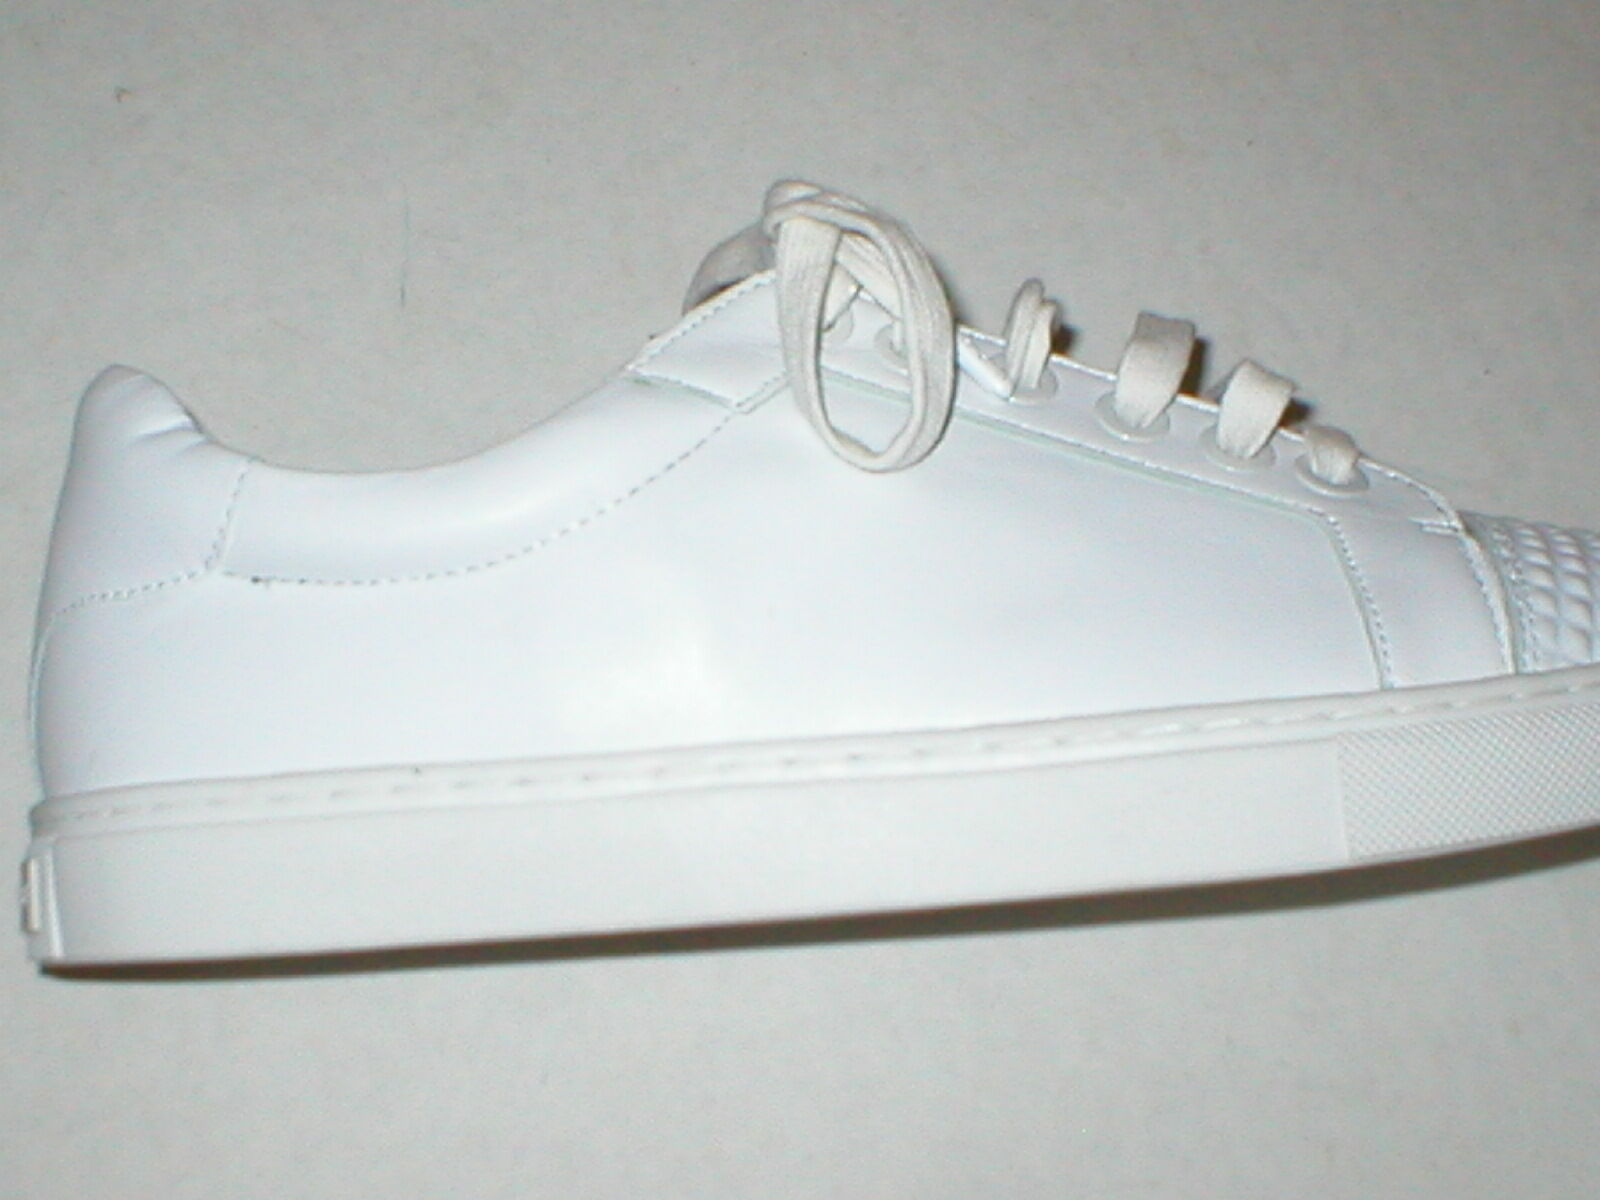 New Womens shoes Fashion Casual Sneakers 8 White Leather Leather Leather Studs Rebecca Minkoff edb2e5